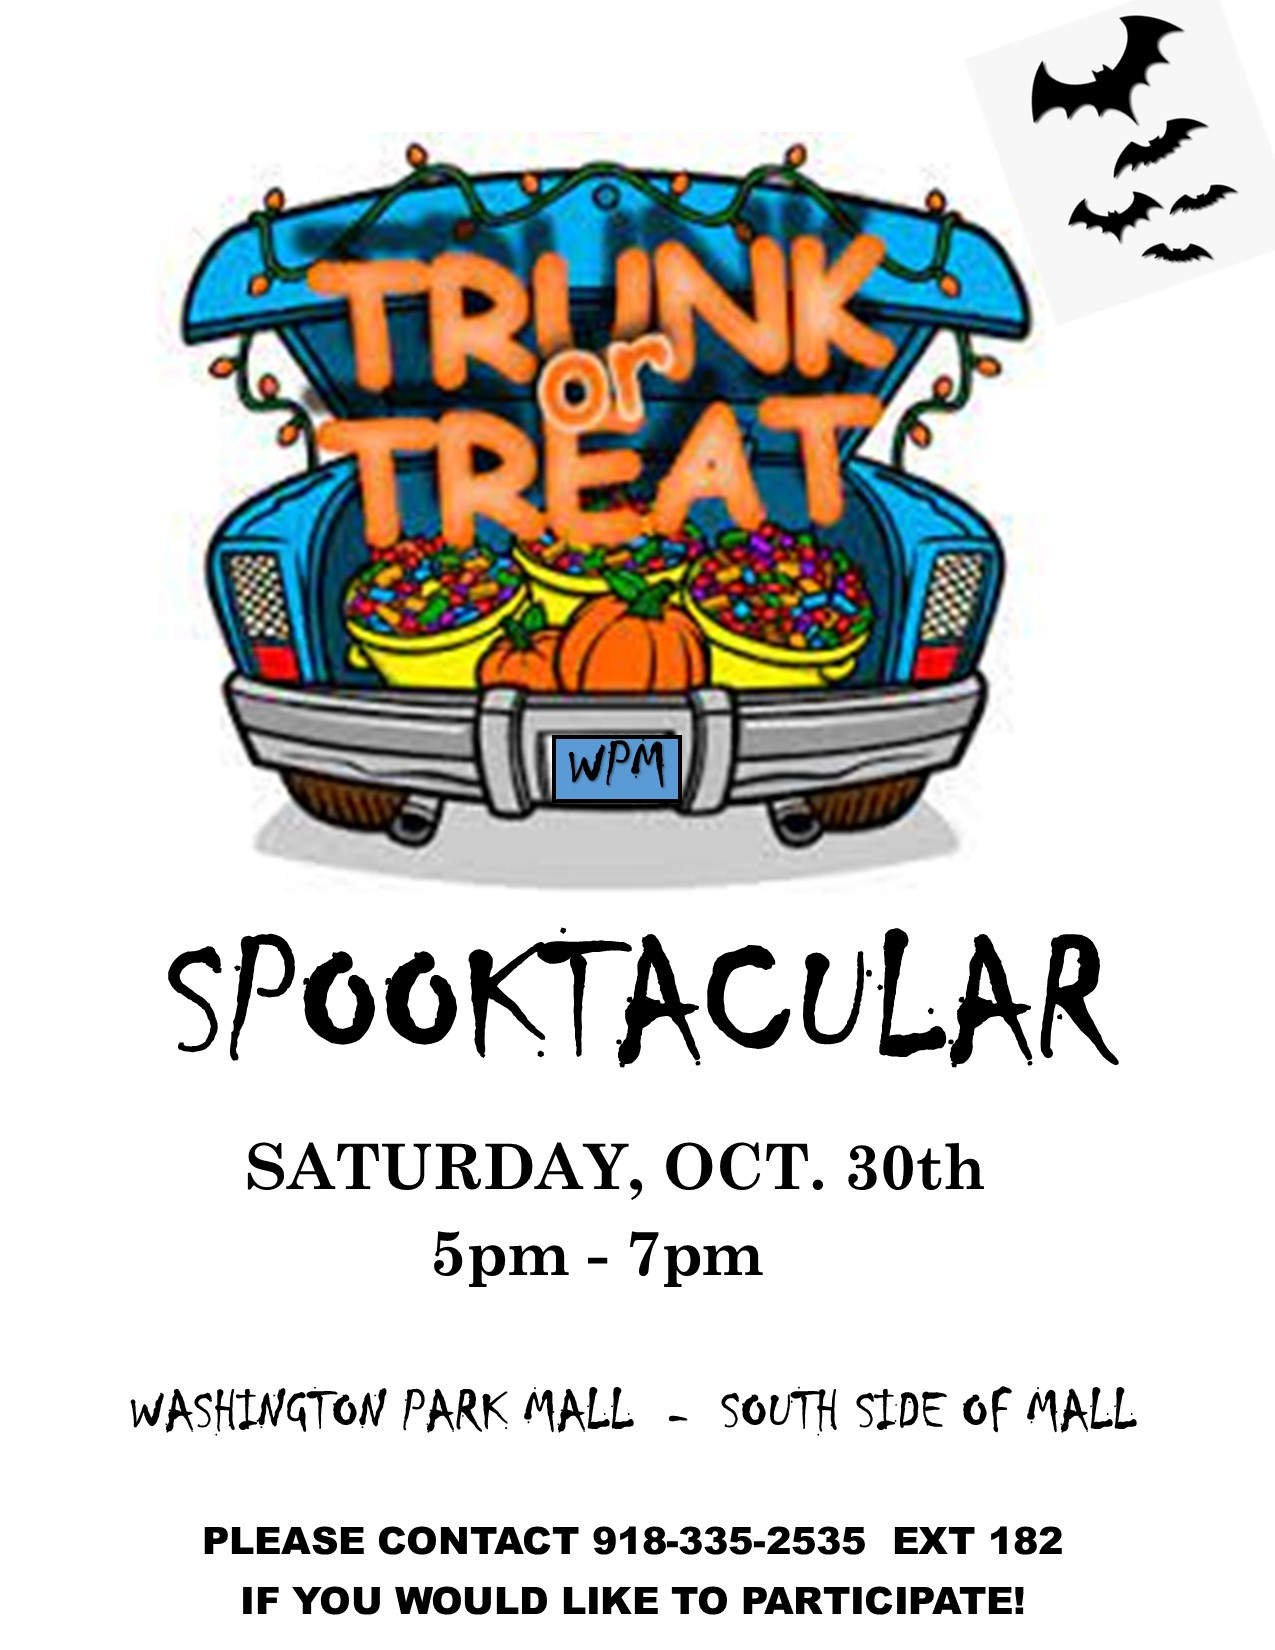 spooktacular trunk or treat information with halloweem car graphic